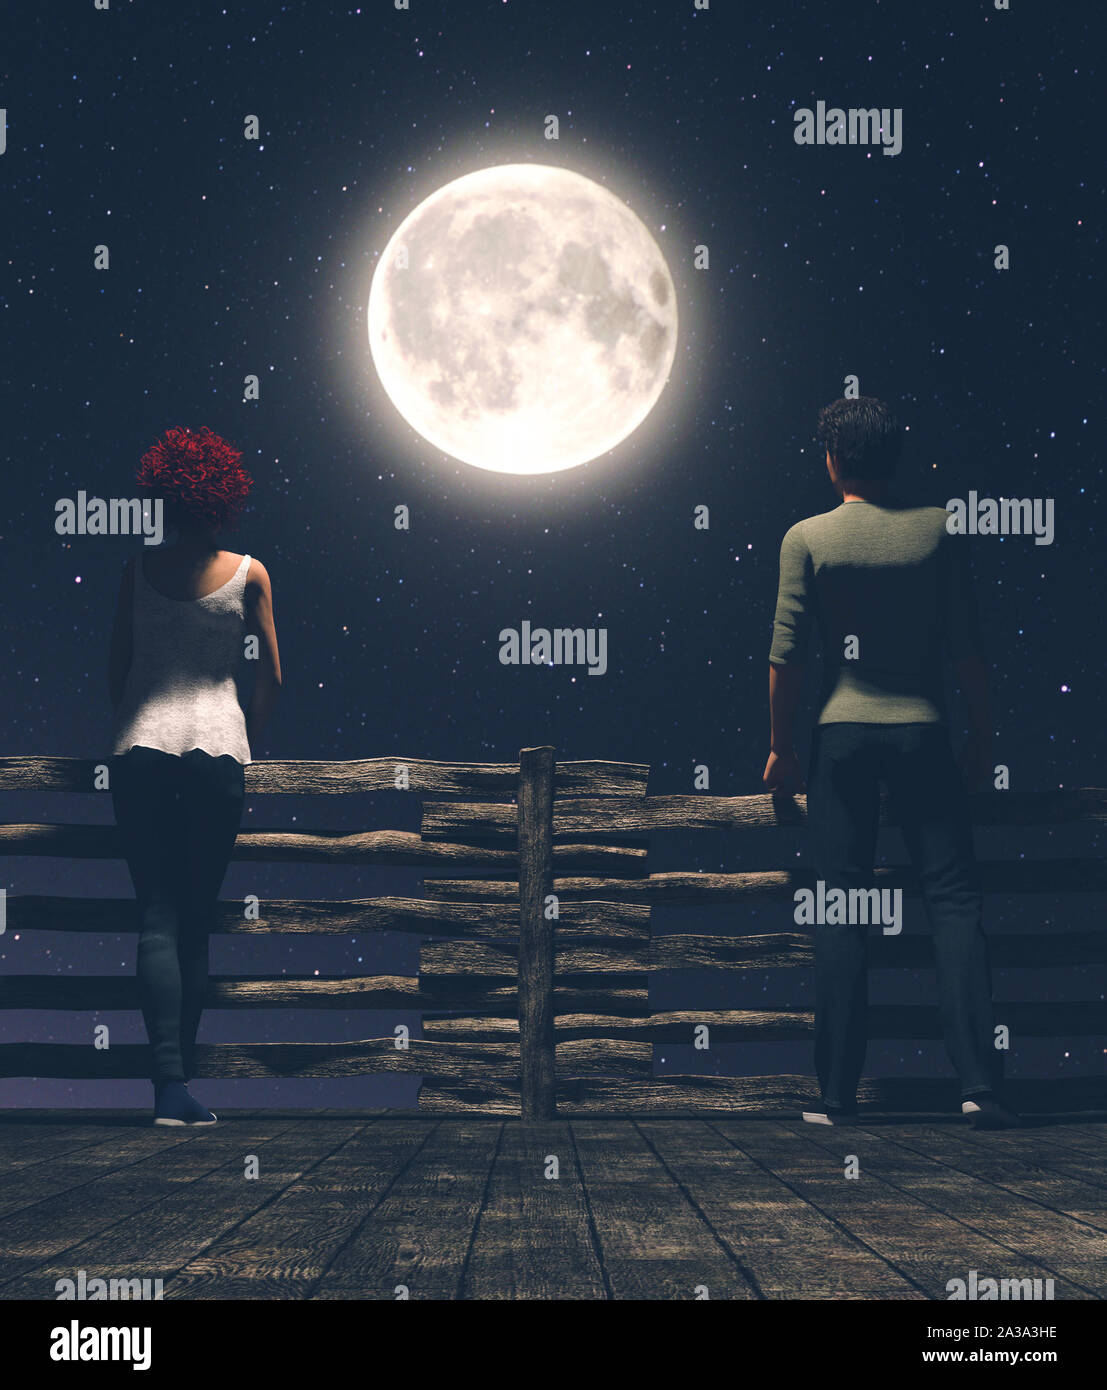 Distance between us,Man and woman on the wooden bridge at night with the moon background,3d illustration Stock Photo